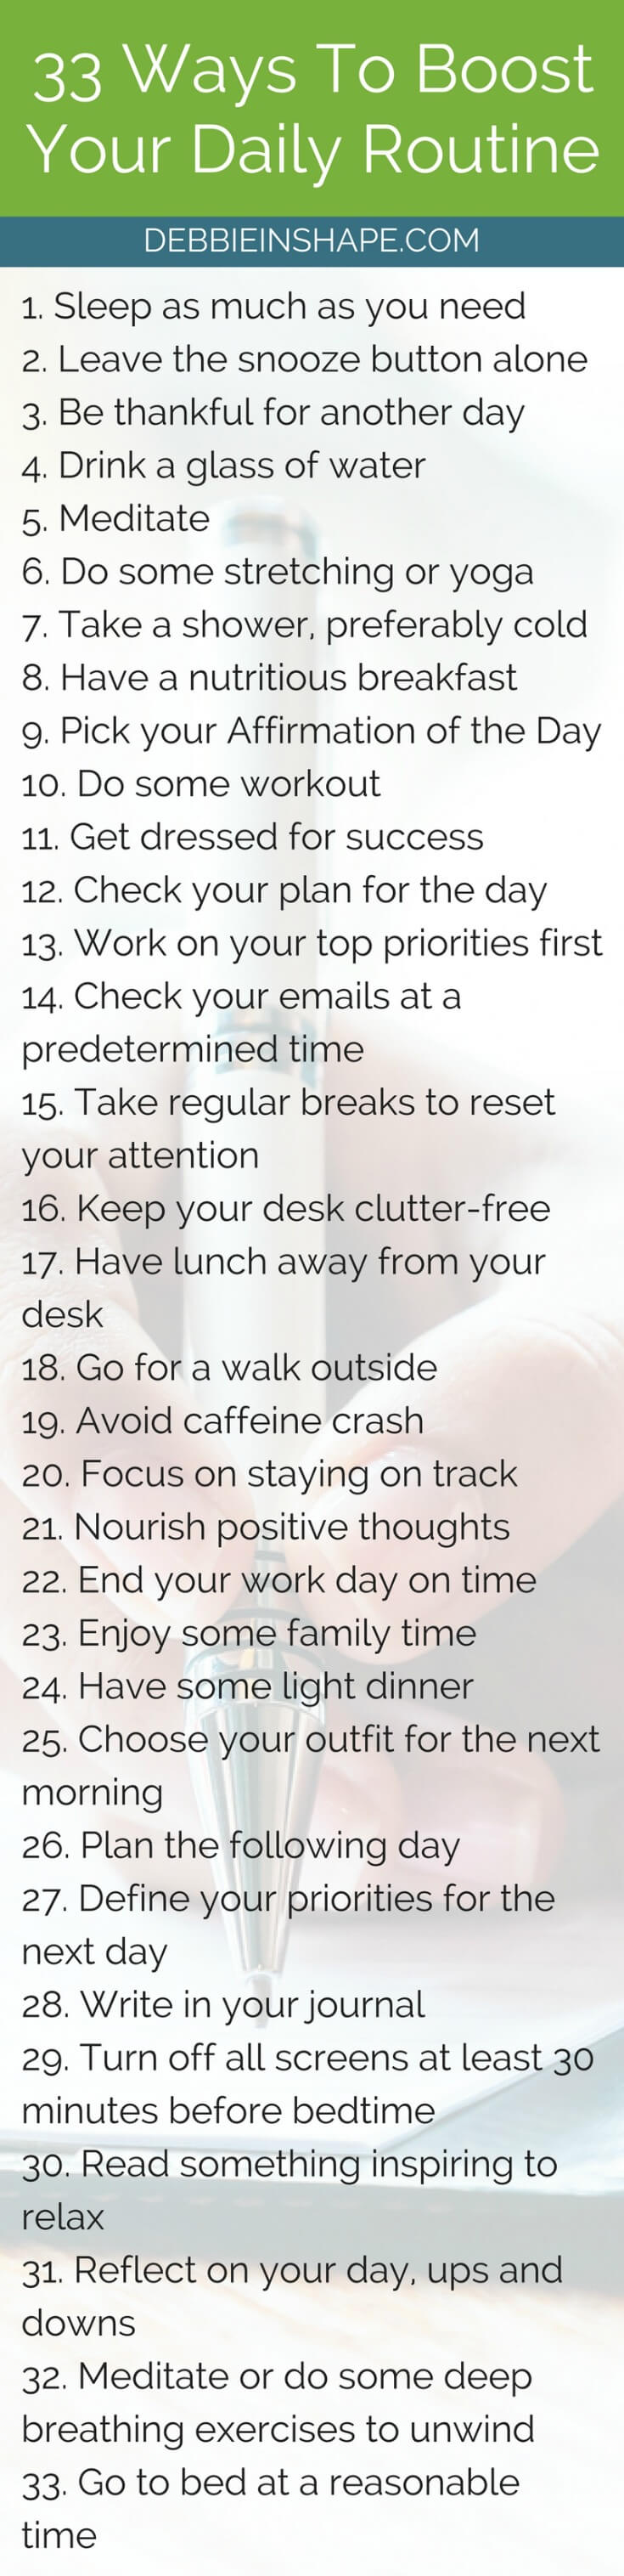 Boost your efficiency and success with these super simple tips. Because you can improve your productivity one day at a time without overwhelm. All you need is a strategy. Learn how to put each step into practice on the blog today. And for support and accountability, join the 52-Week Challenge For A More Productive You FOR FREE.